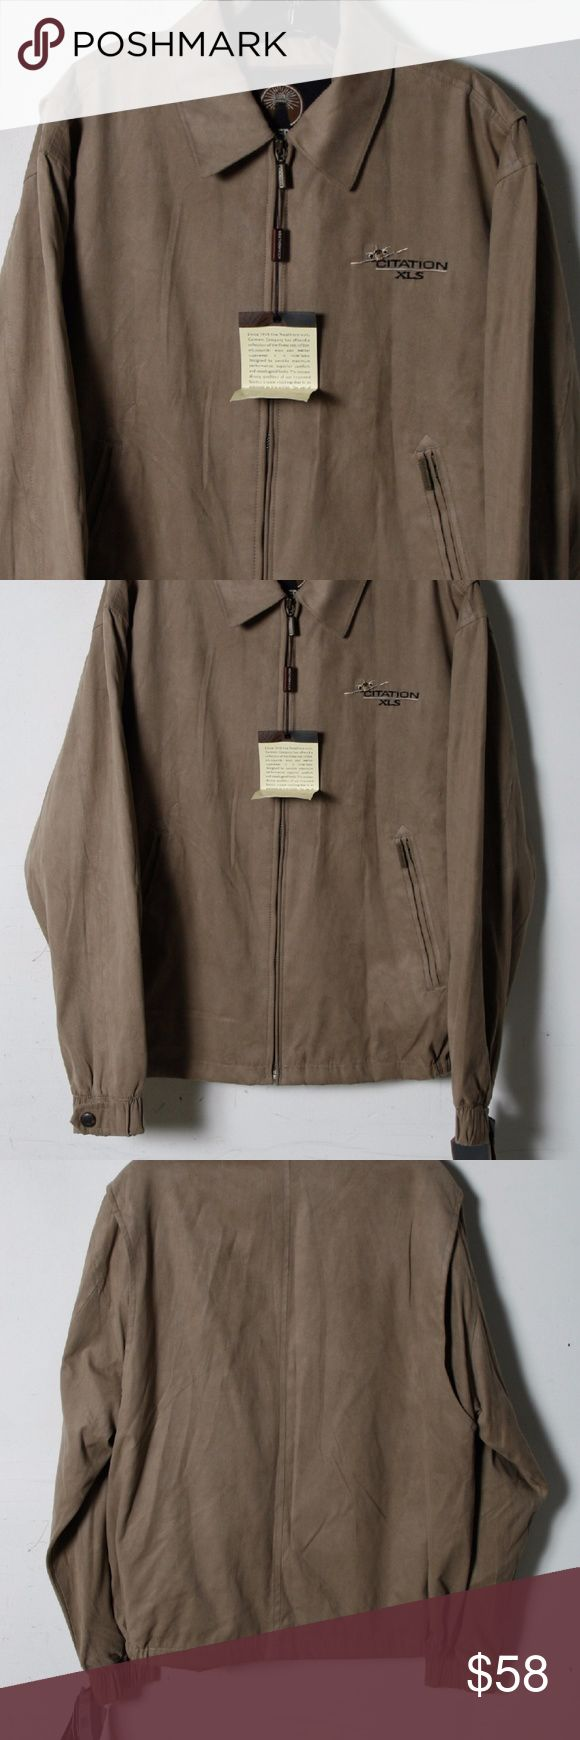 NWT PATAGONIA womens windbreaker AVIATION jacket M PATAGONIA womens windbreaker AVIATION jacket  Size M Weather Proof New With Tags! Patagonia Jackets & Coats Utility Jackets